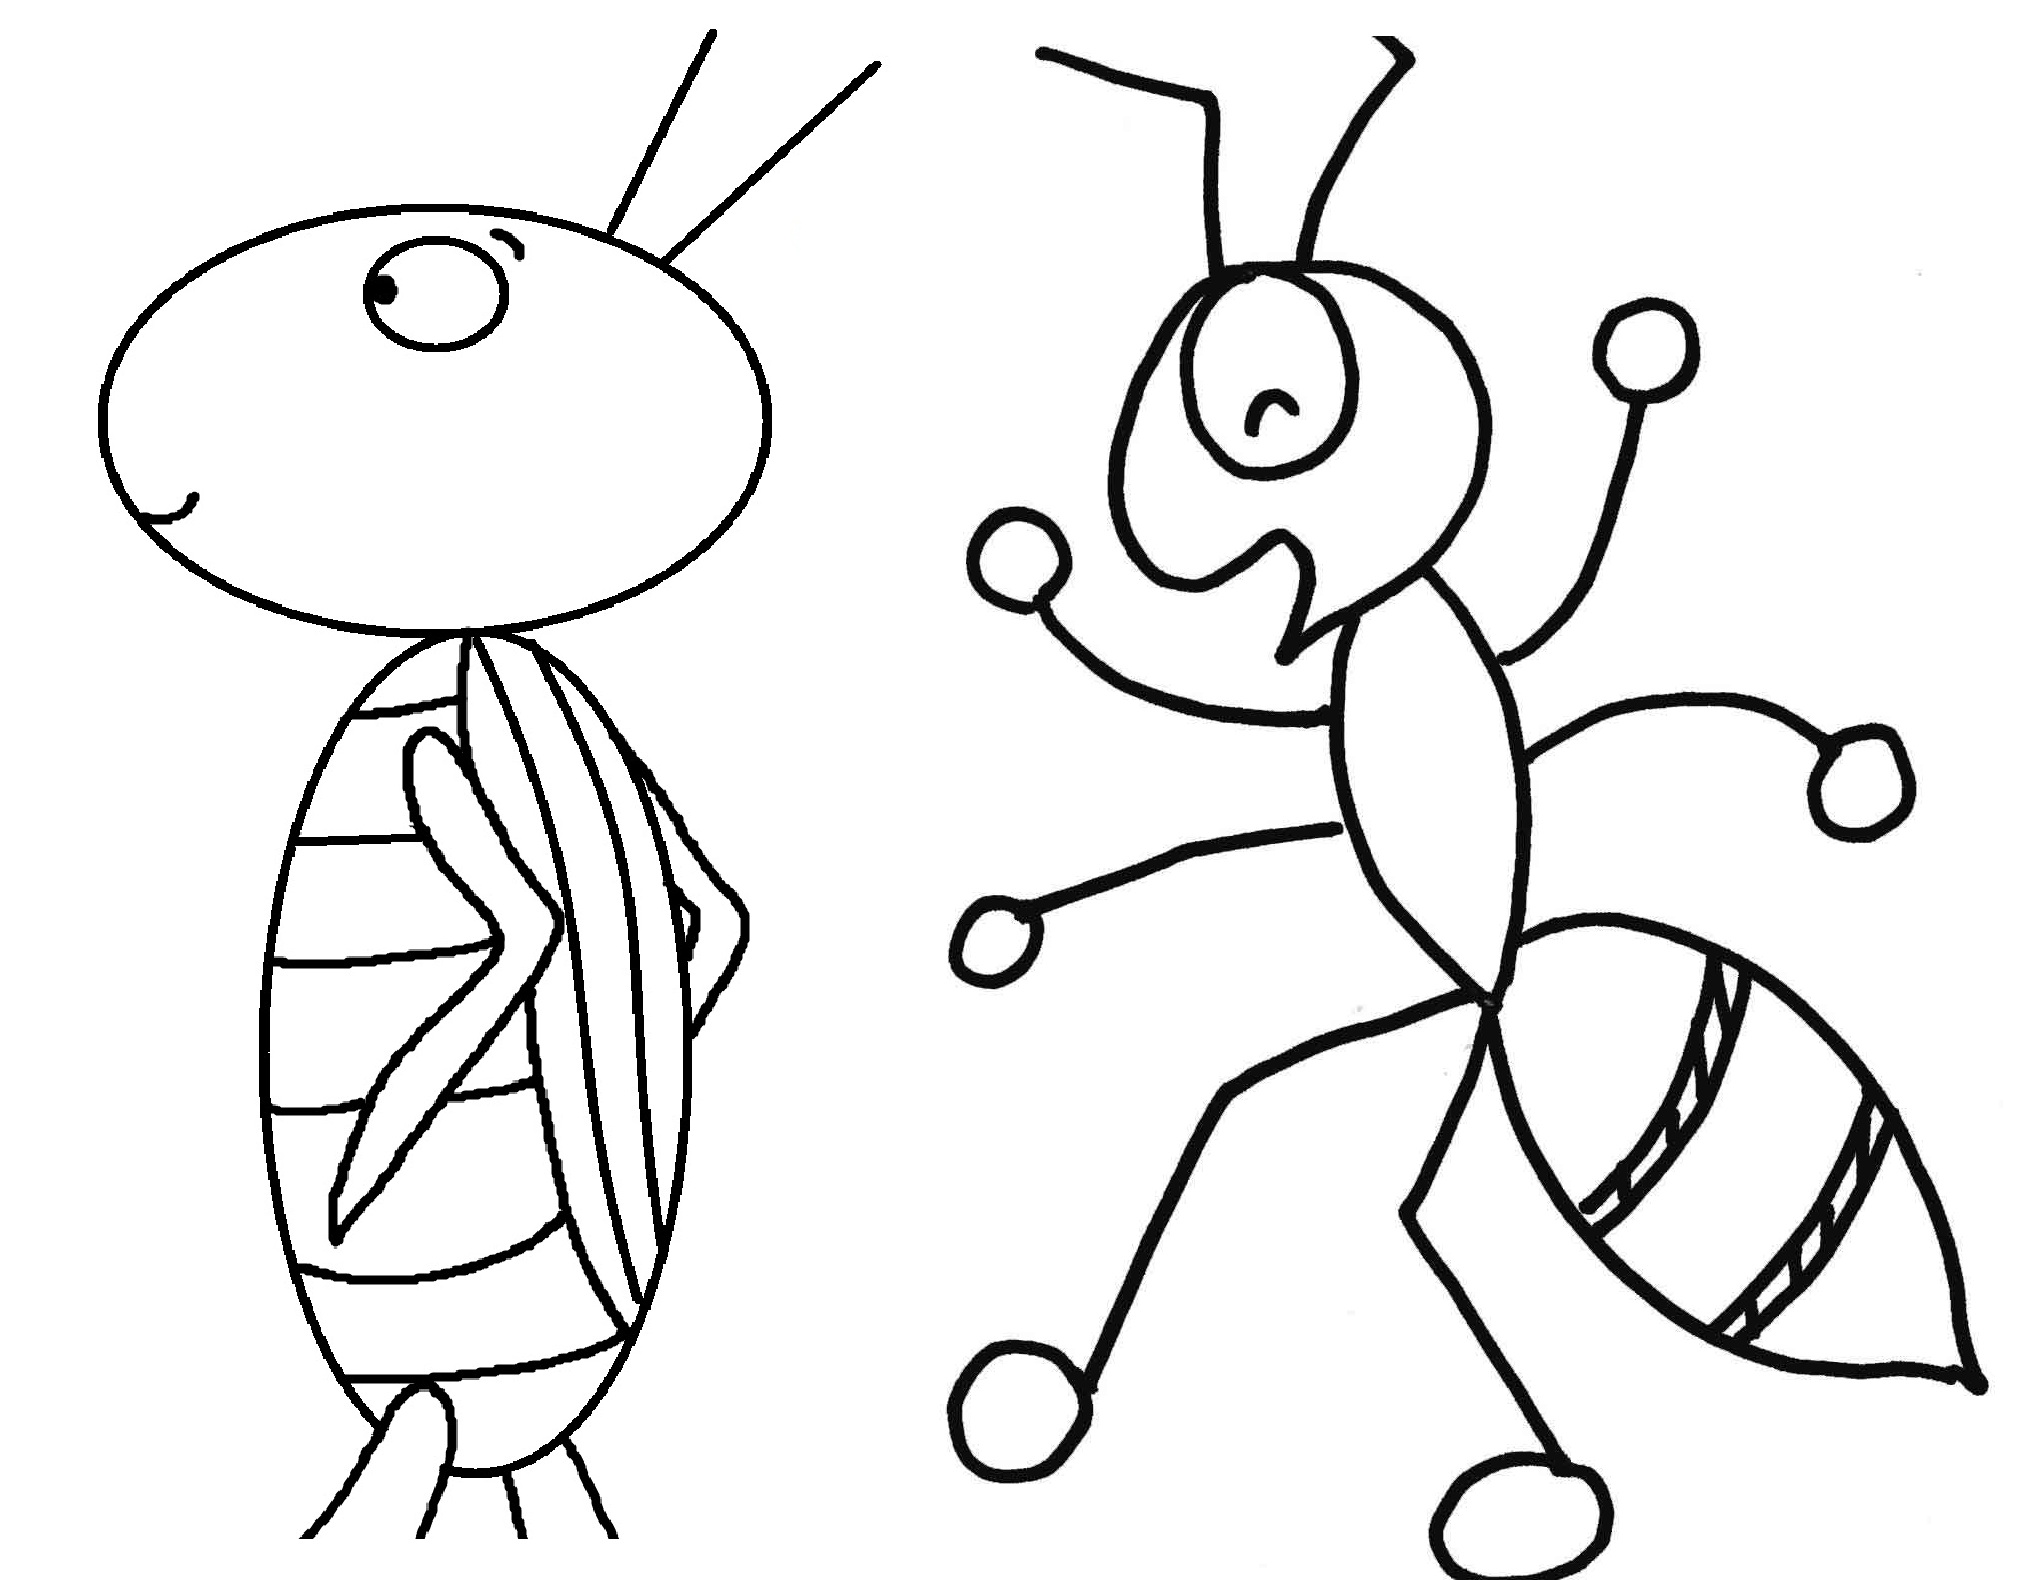 Ant clipart colouring page. Grasshopper drawing outline at